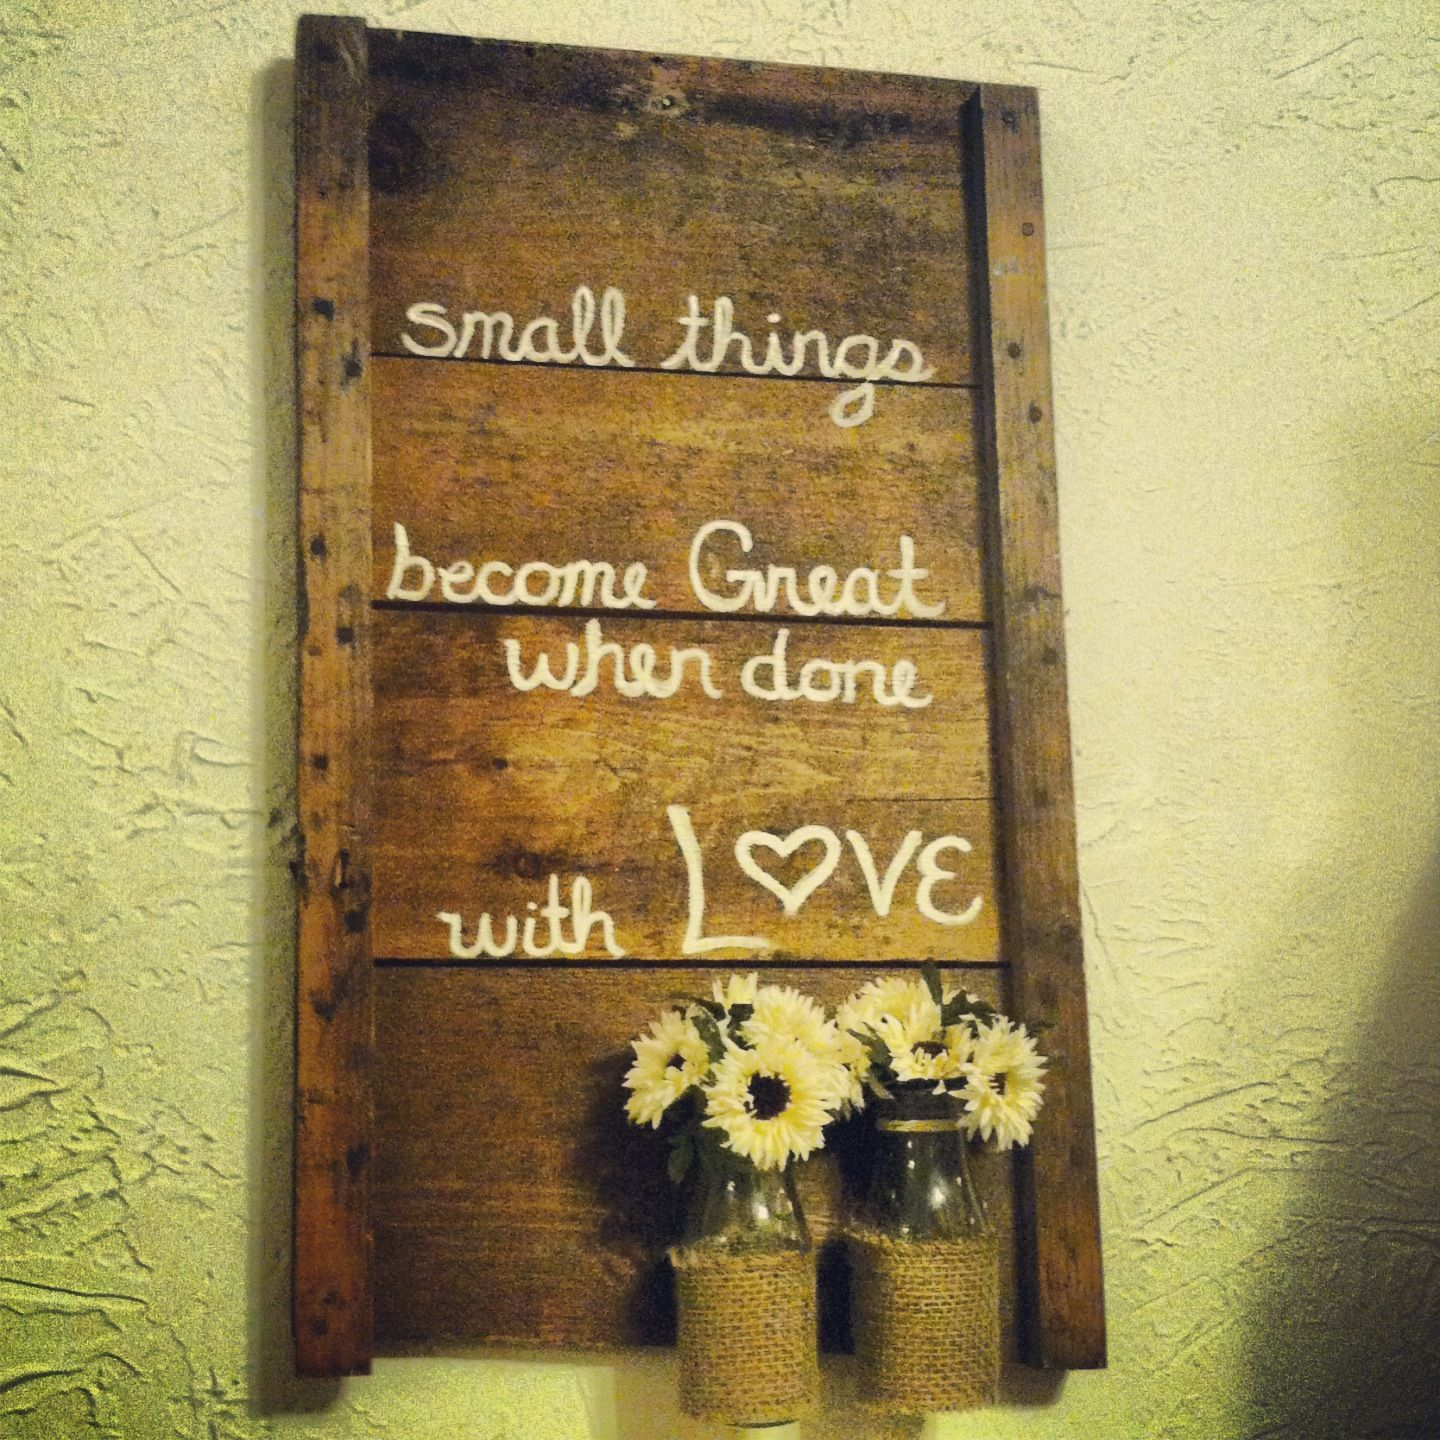 Quote painted on scrap wood with small glass bottles holding flowers